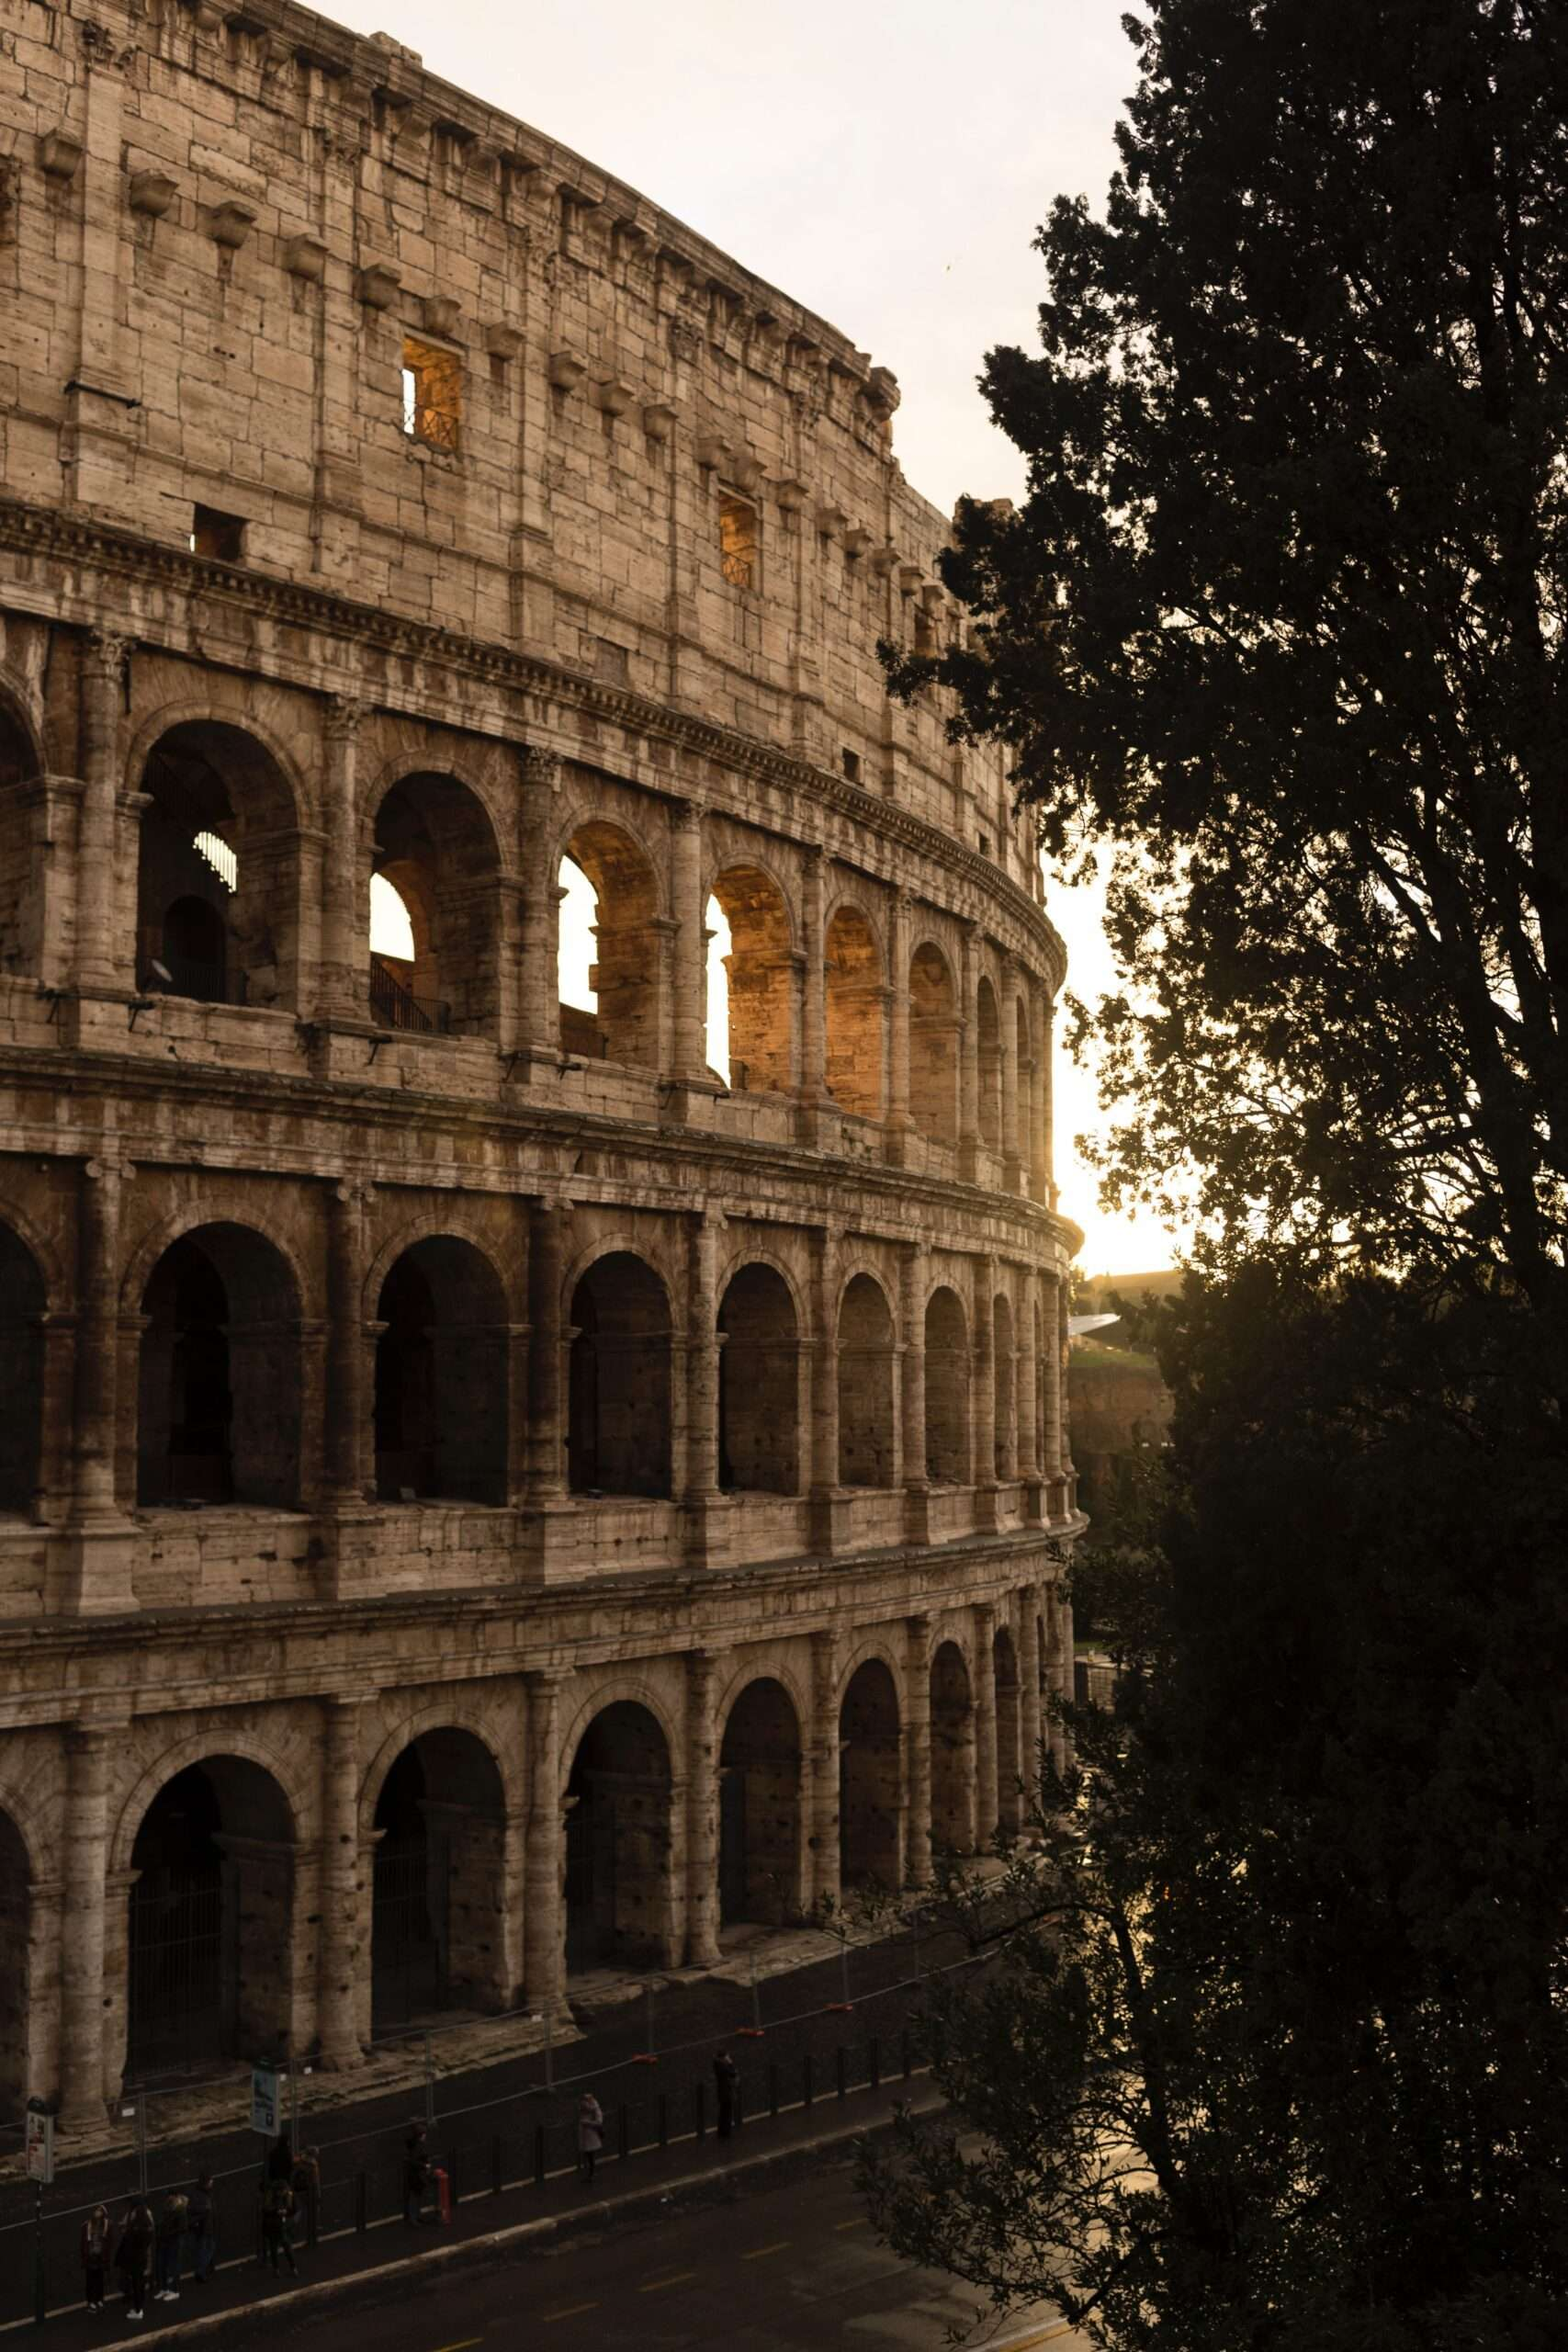 The Colosseum in Rome one of the Best things to do in Rome